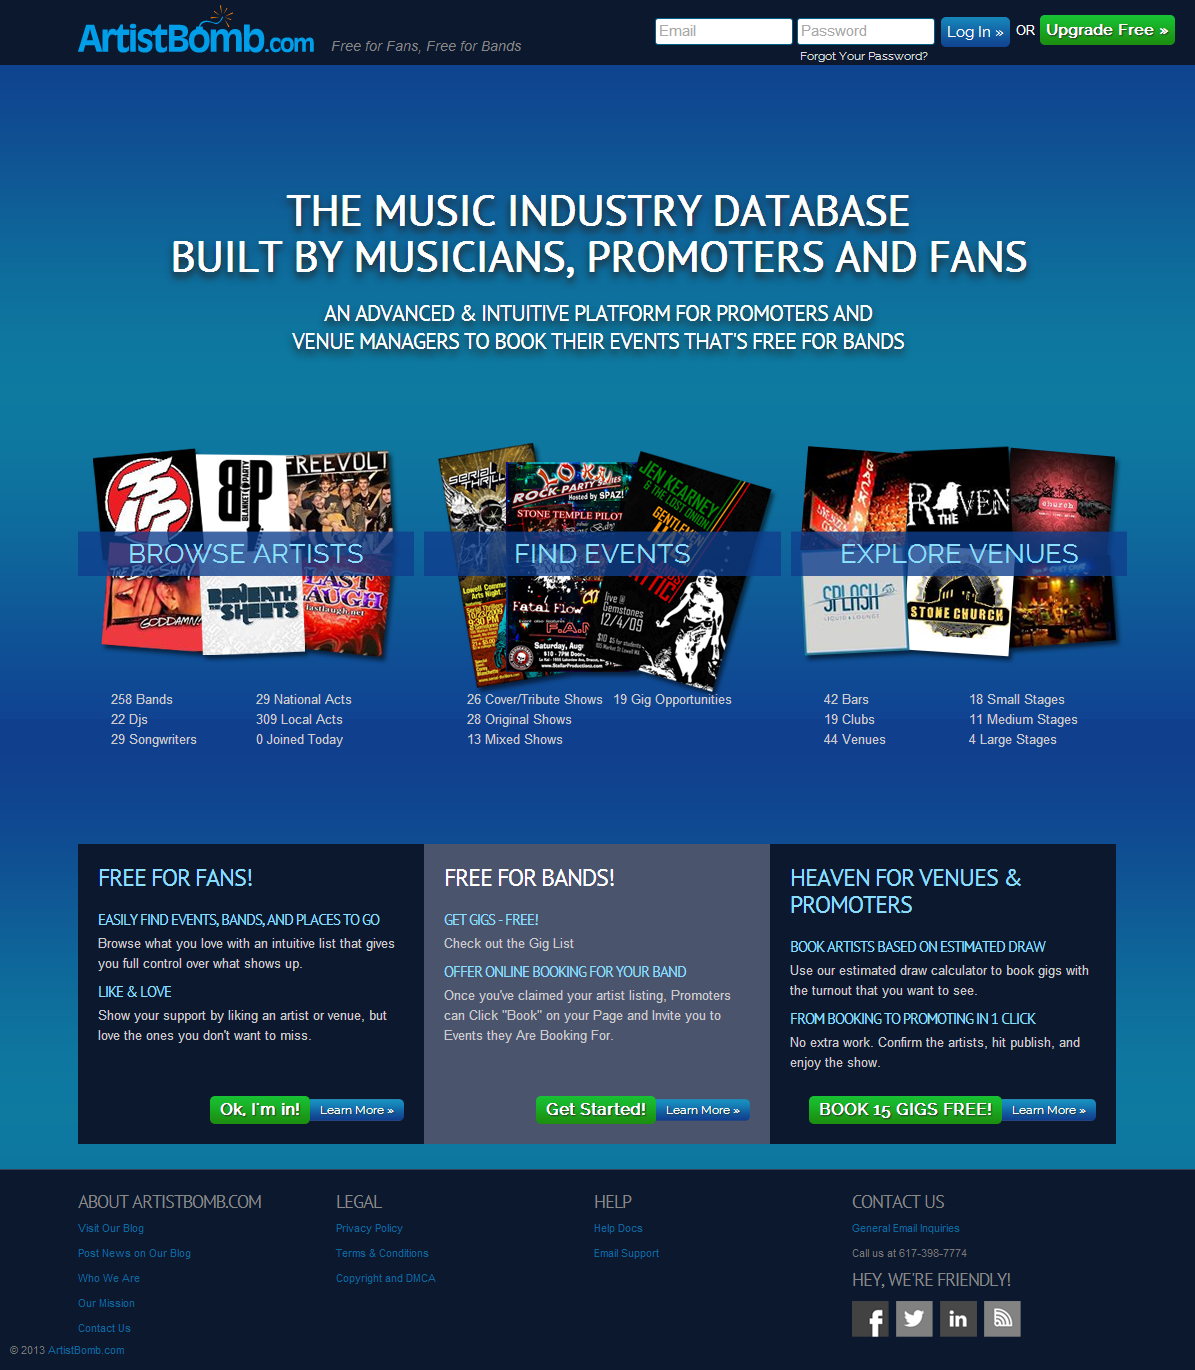 ArtistBomb.com The Music Industry Database